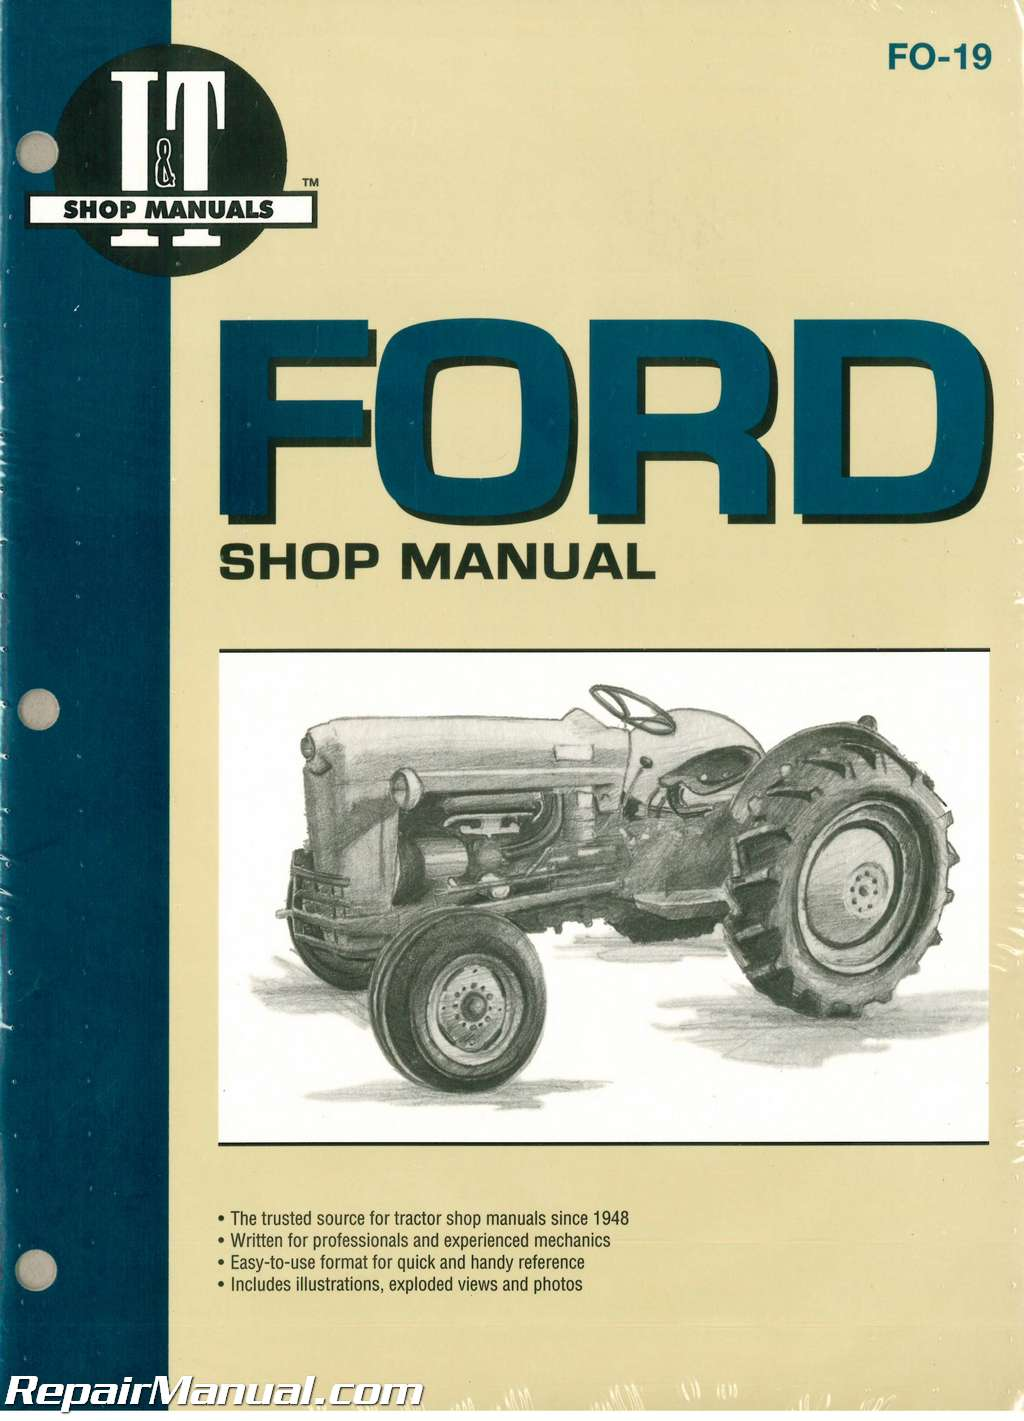 ford new holland naa golden jubilee tractor repair manual rh repairmanual com 1953 Ford Golden Jubilee Tractor Parts Golden Jubilee Ford Tractor Sherman